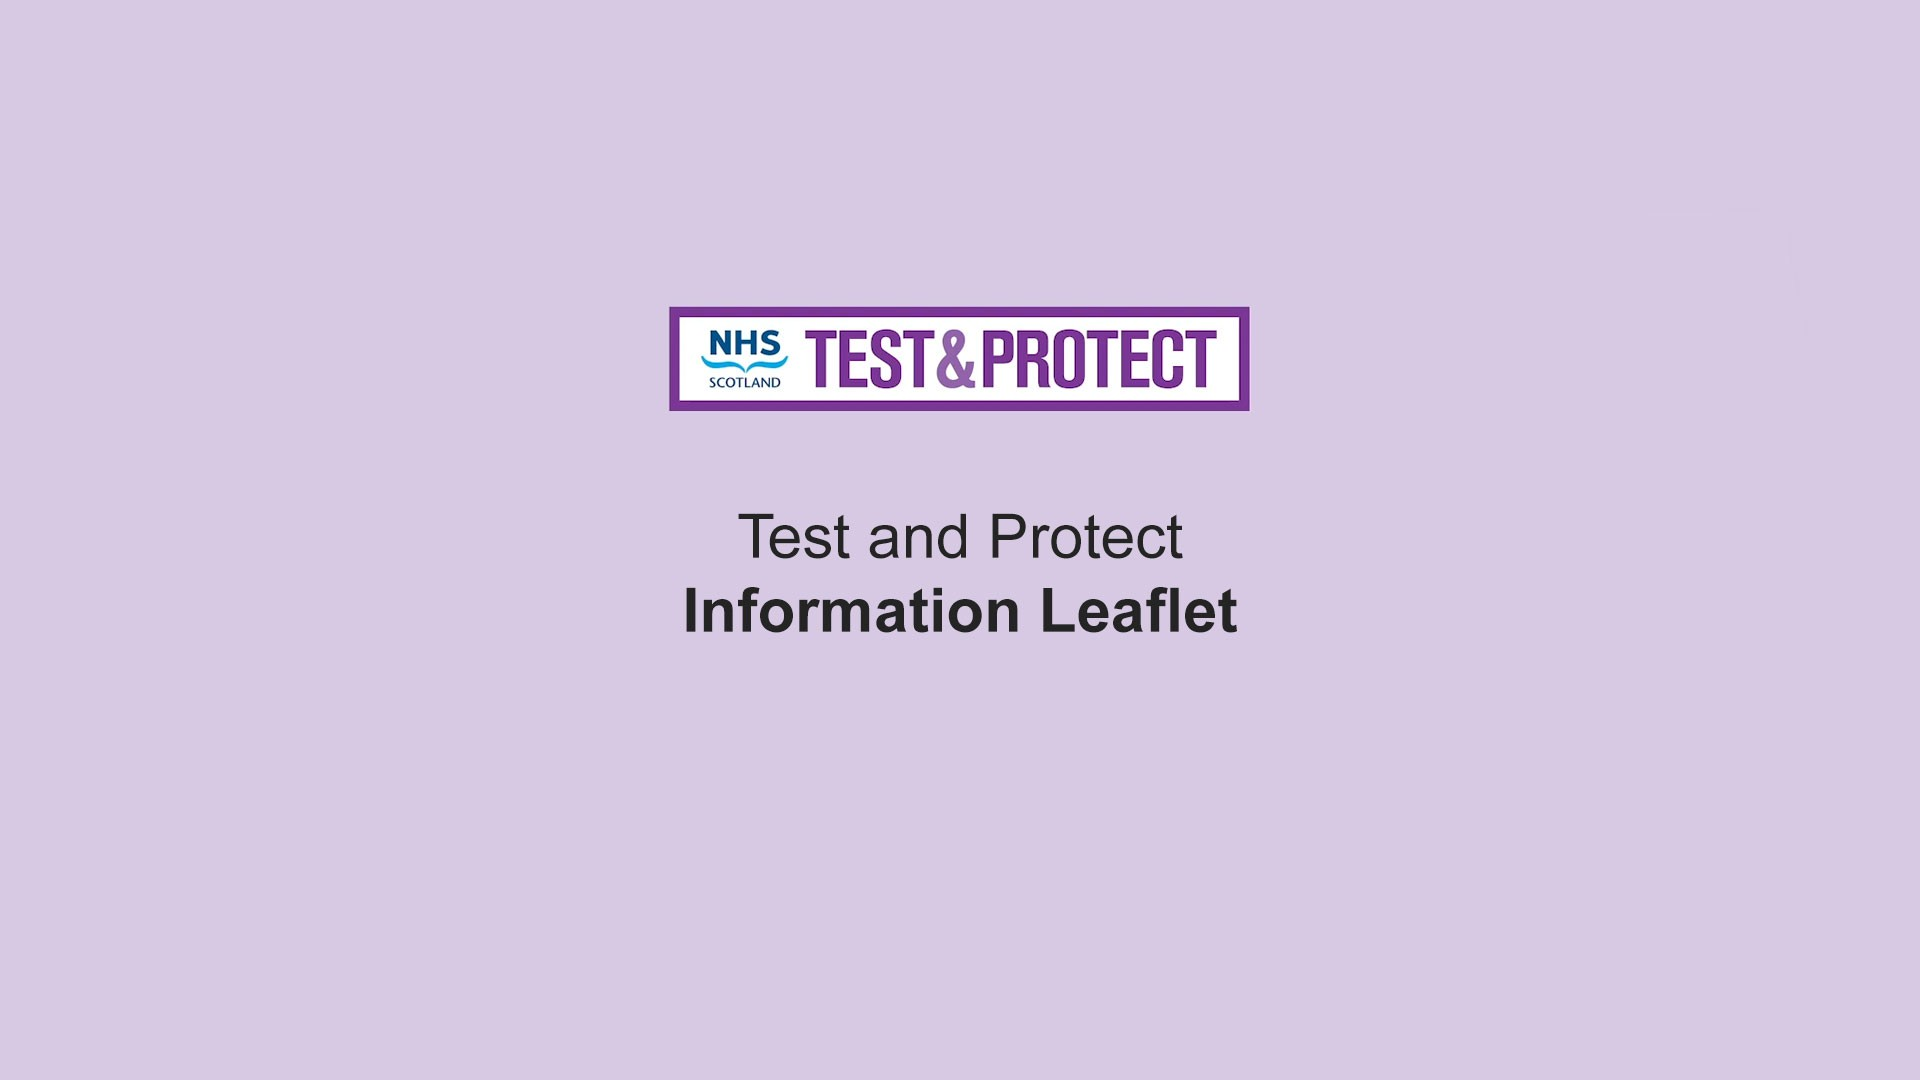 Test-and-Protect—Information-Leafle2t